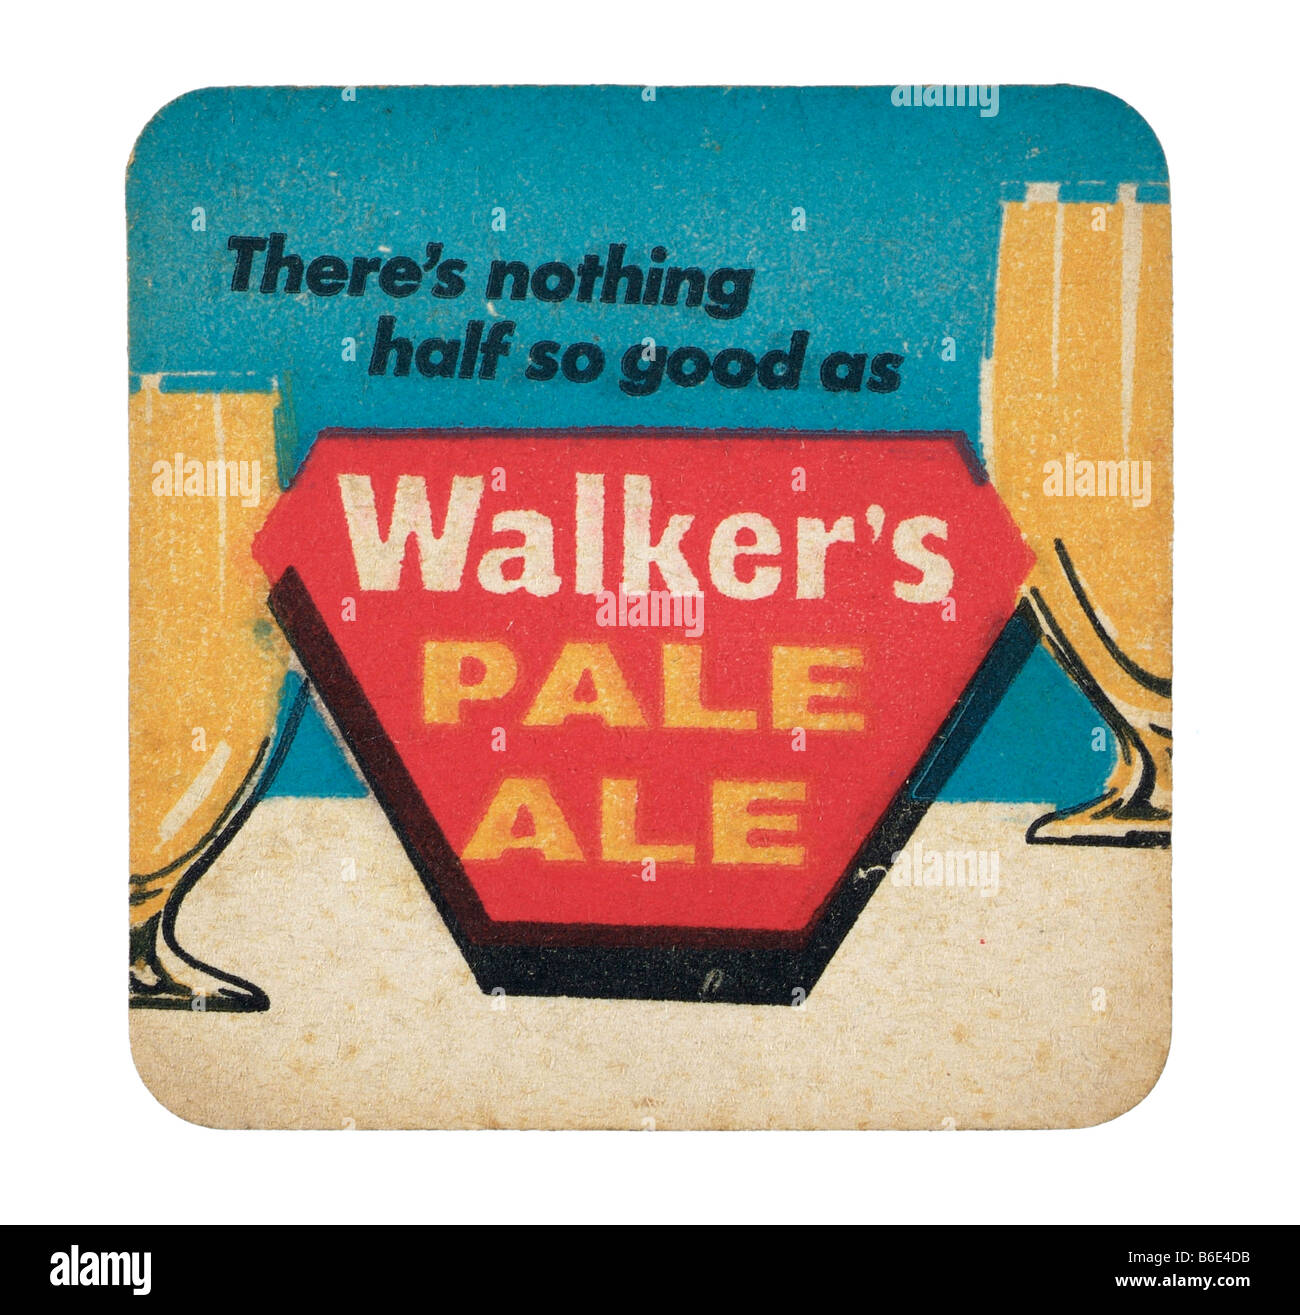 theres nothing half as good as walkers pale ale beermat coaster  rest glasses beer beverages Public houses United - Stock Image